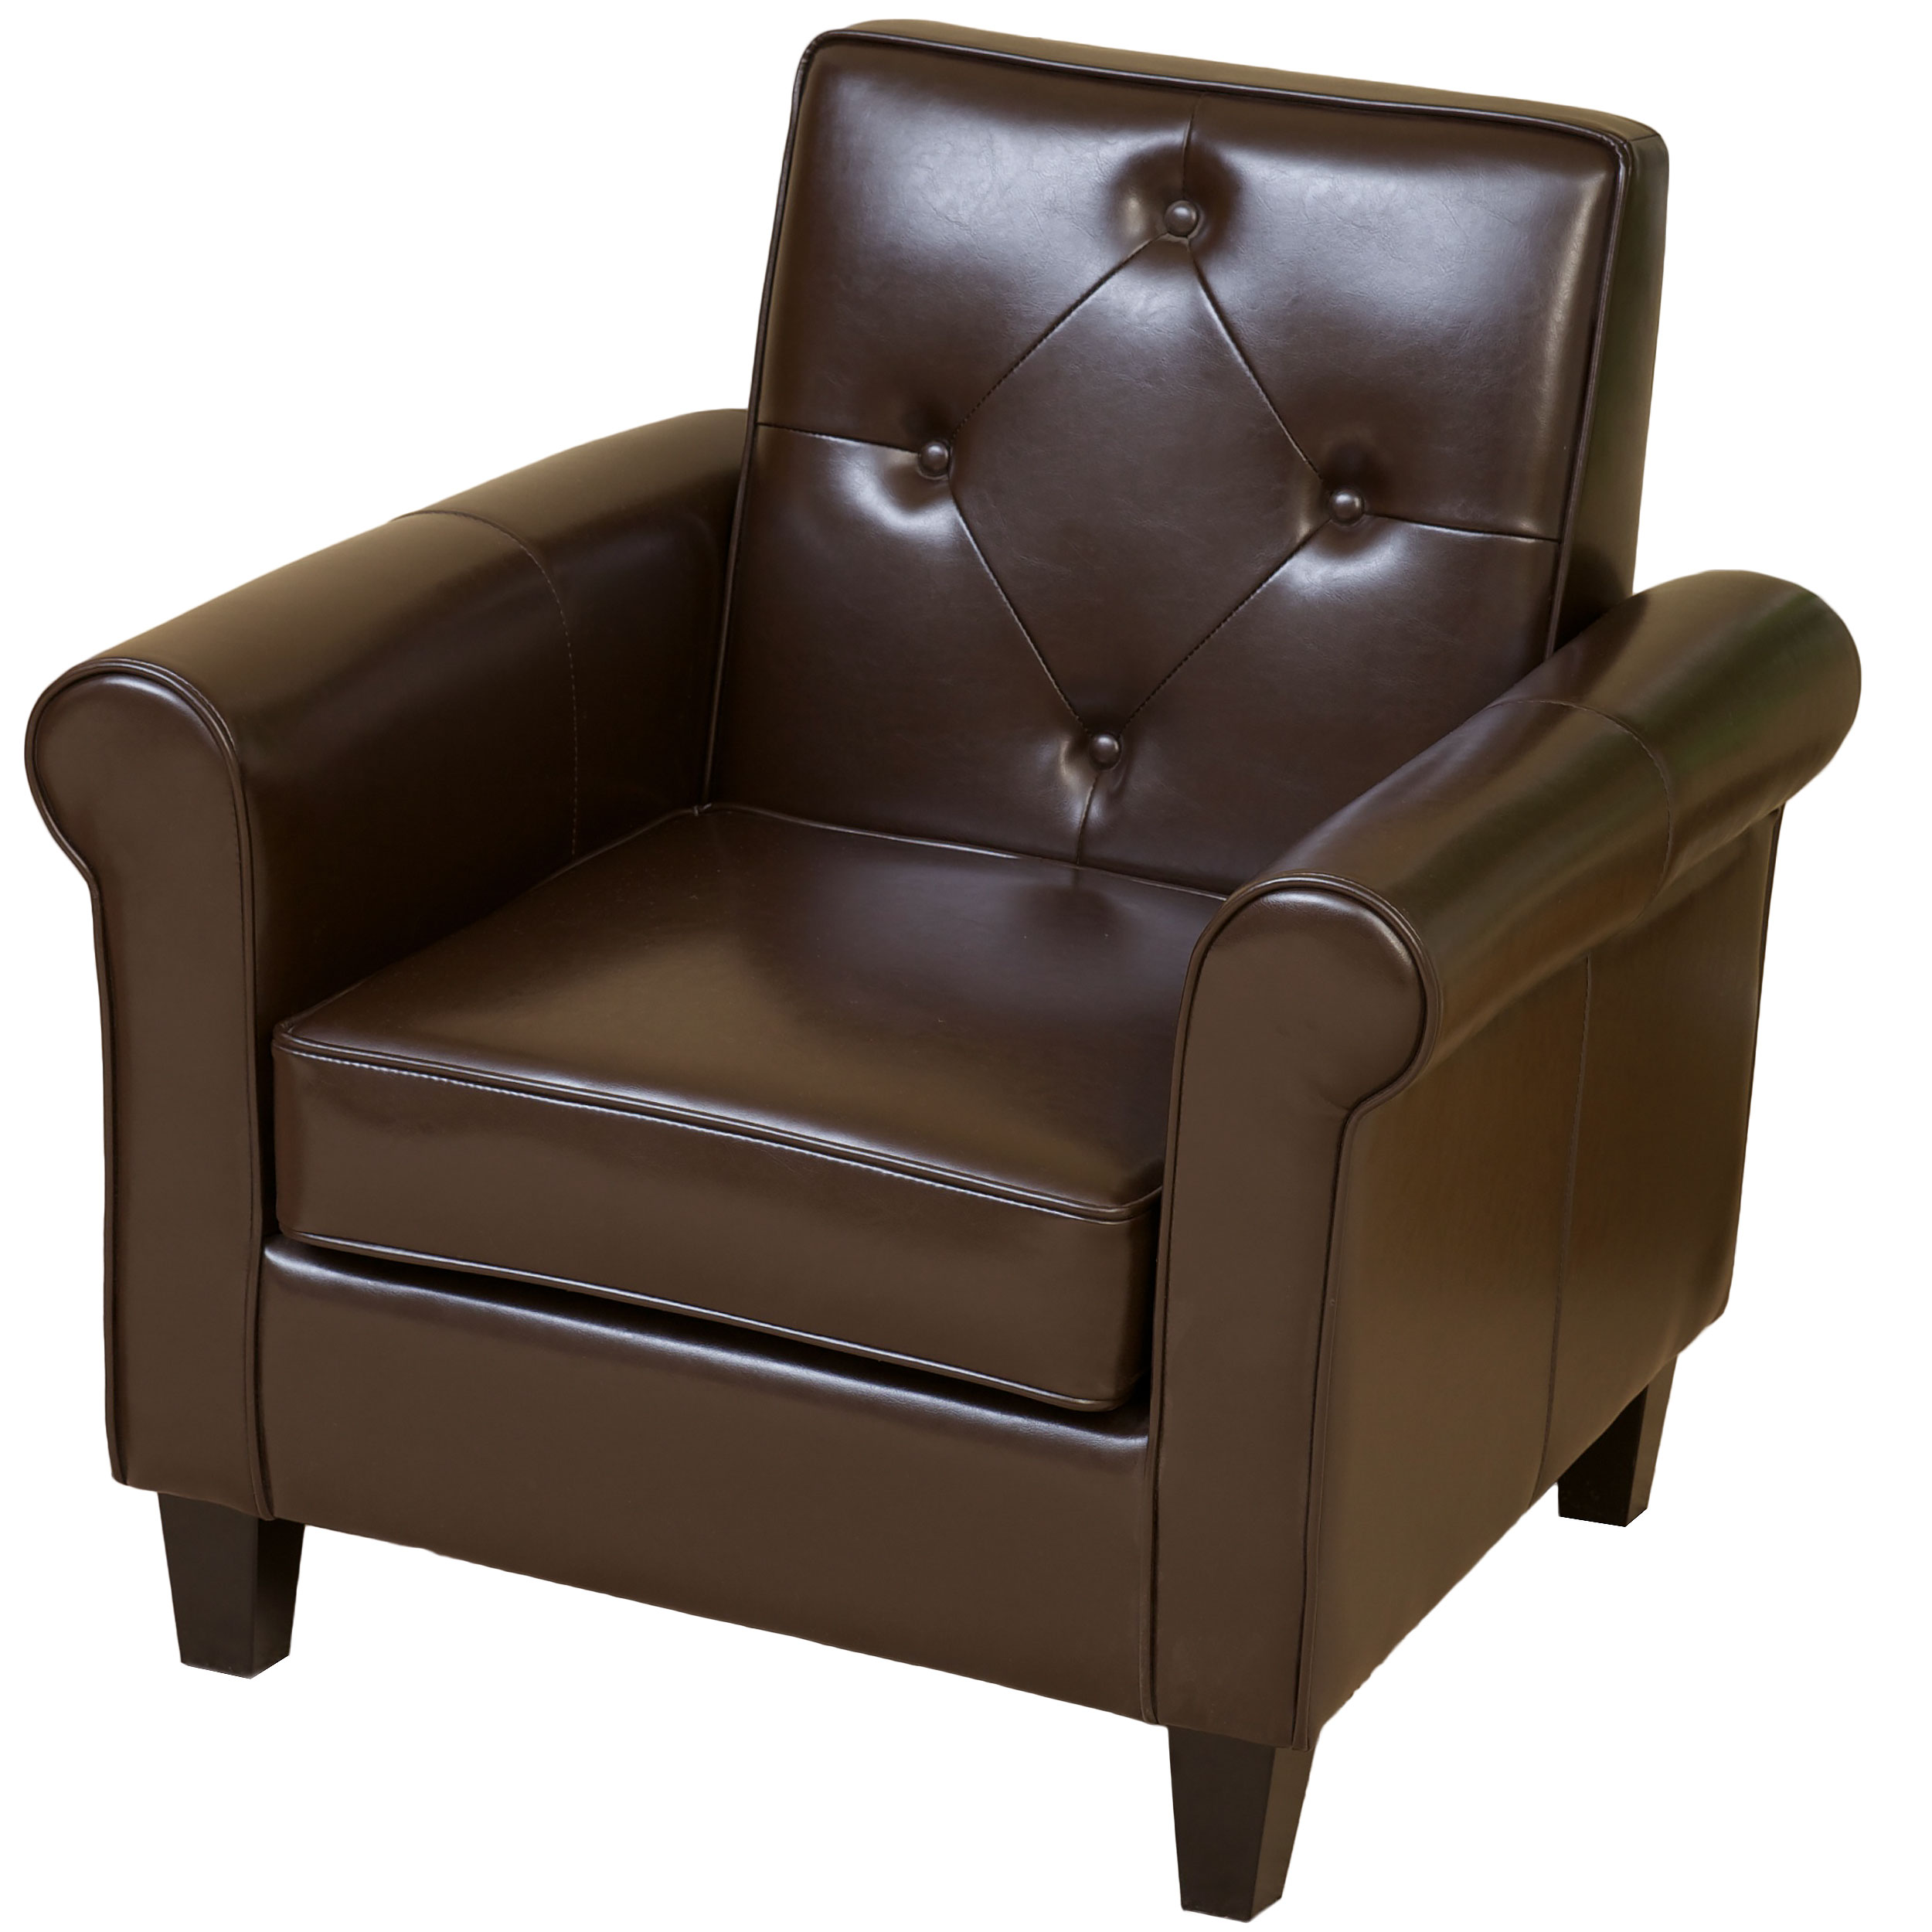 Oakly Tufted Brown Bonded Leather Club Chair by GDF Studio